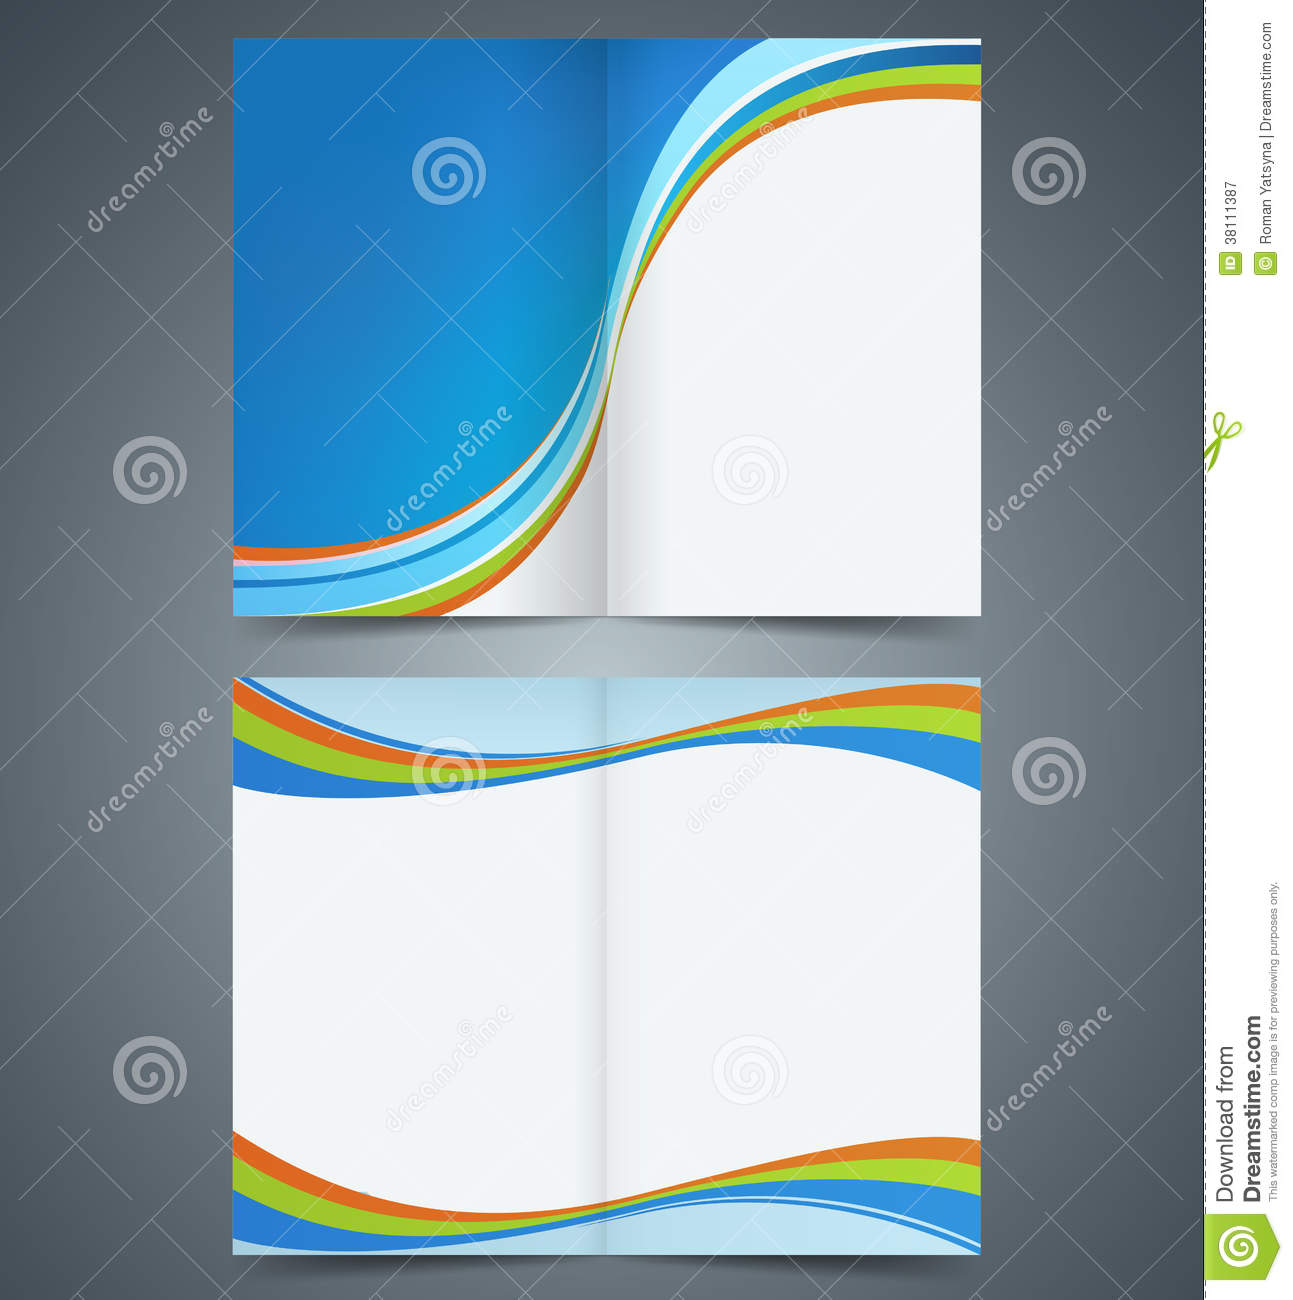 Bifold Brochure Template Design Business Leaflet Stock Vector - Brochure booklet templates